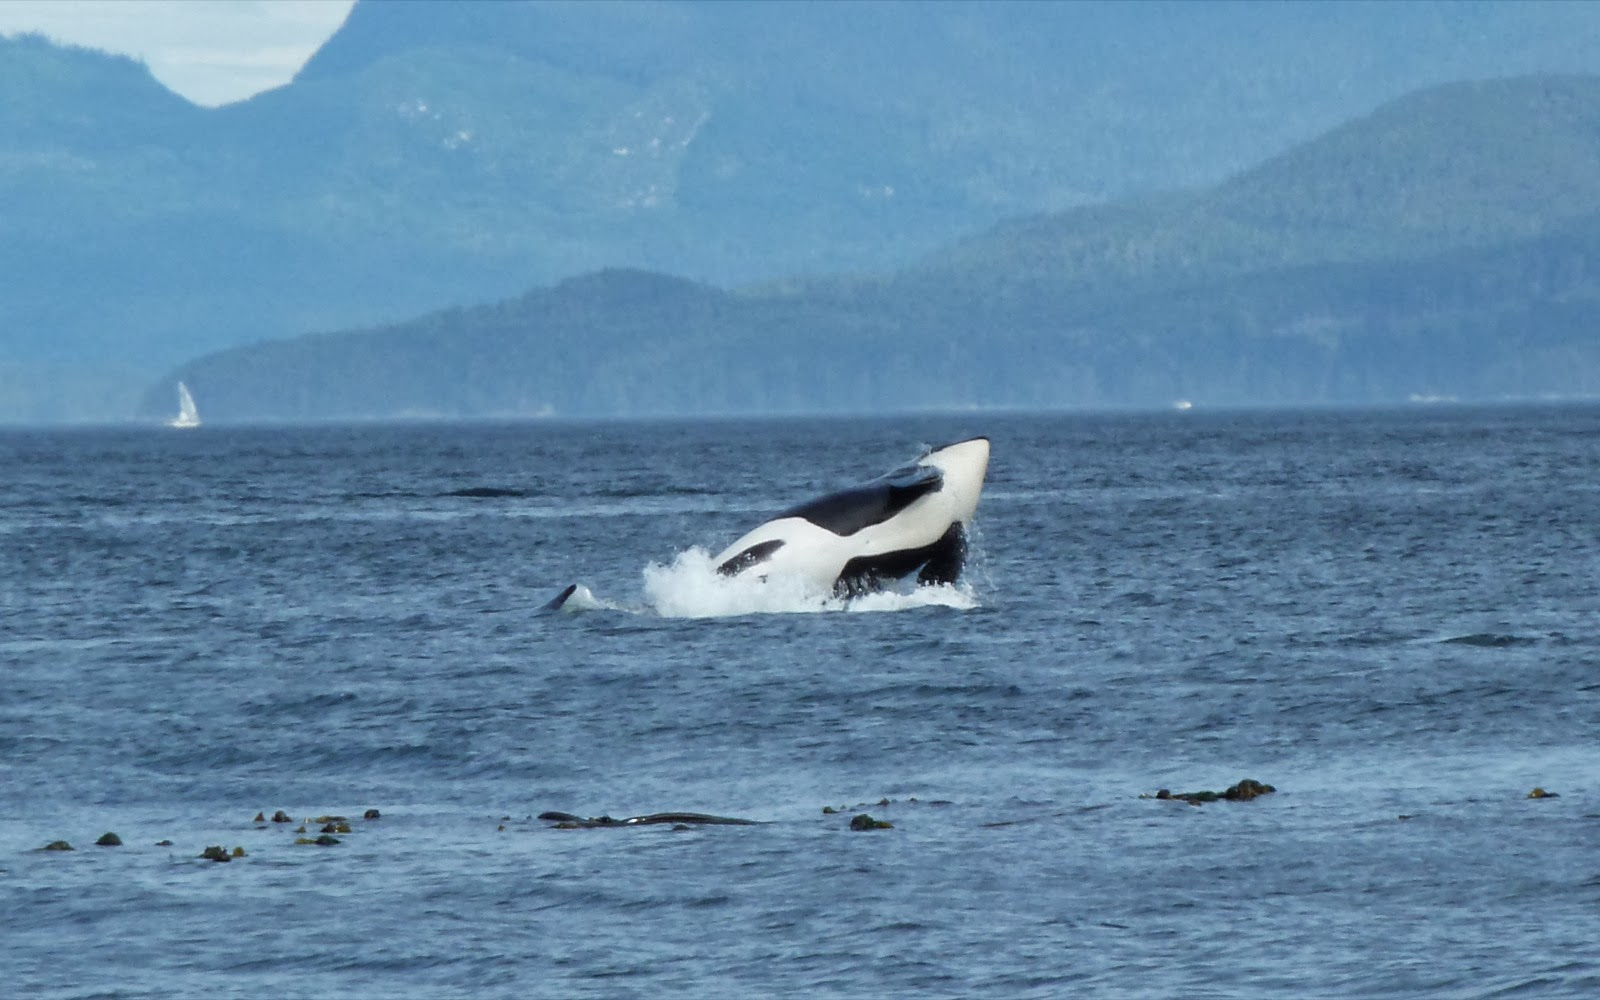 orca-camp-222-killer-whale-surfacing copy.jpg